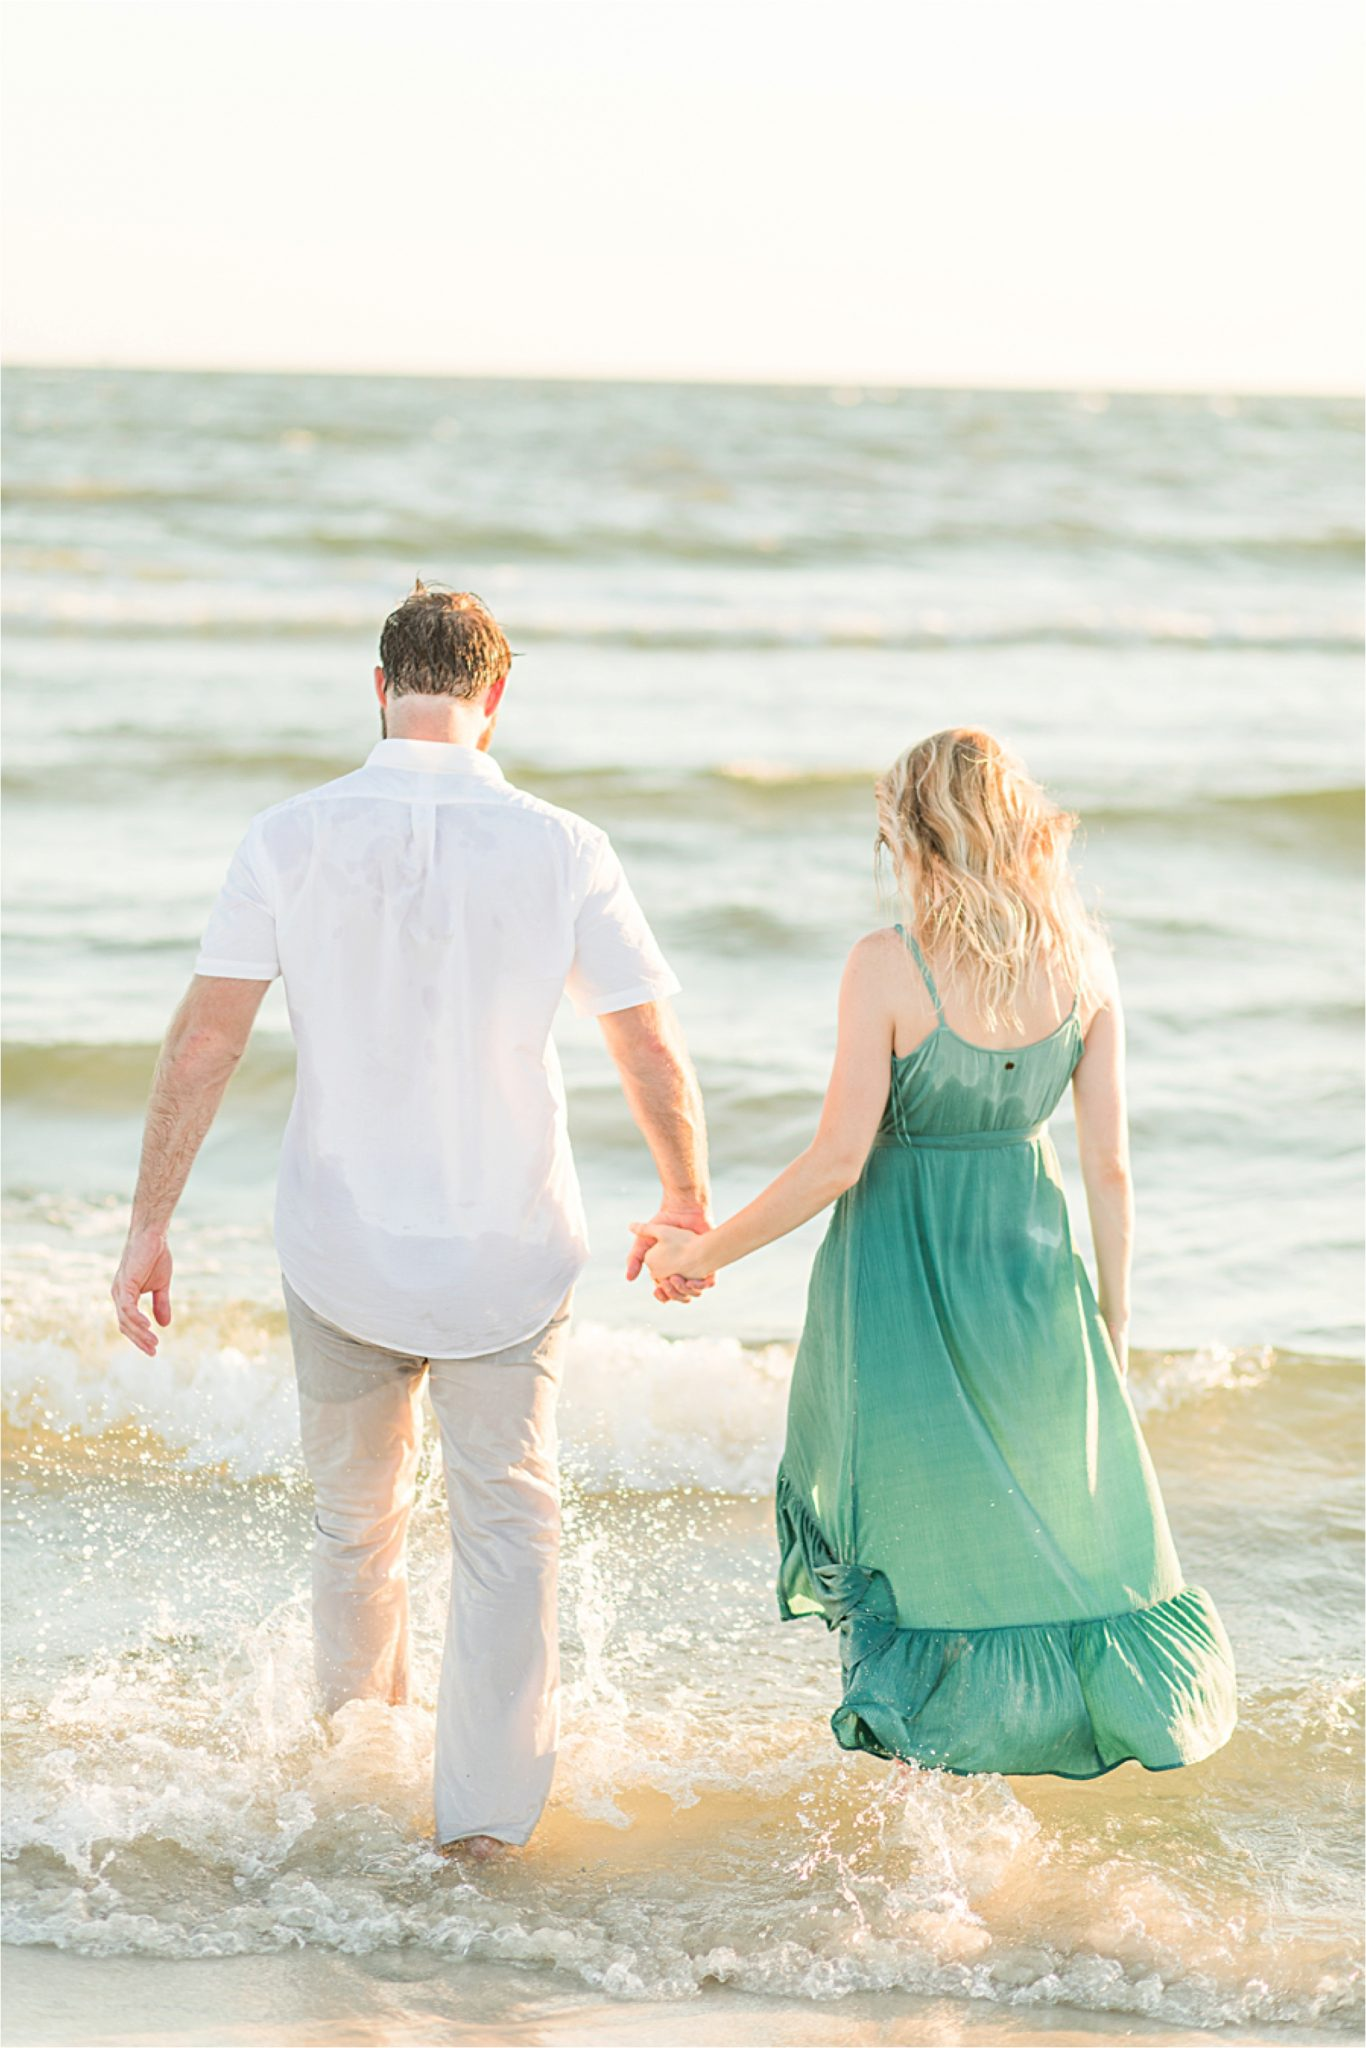 Beach engagement photos, Daulphin Island, Mobile wedding photographer, Candid couples, Romantic engagement shoot inspiration, whimsical, sunset engagement shoot